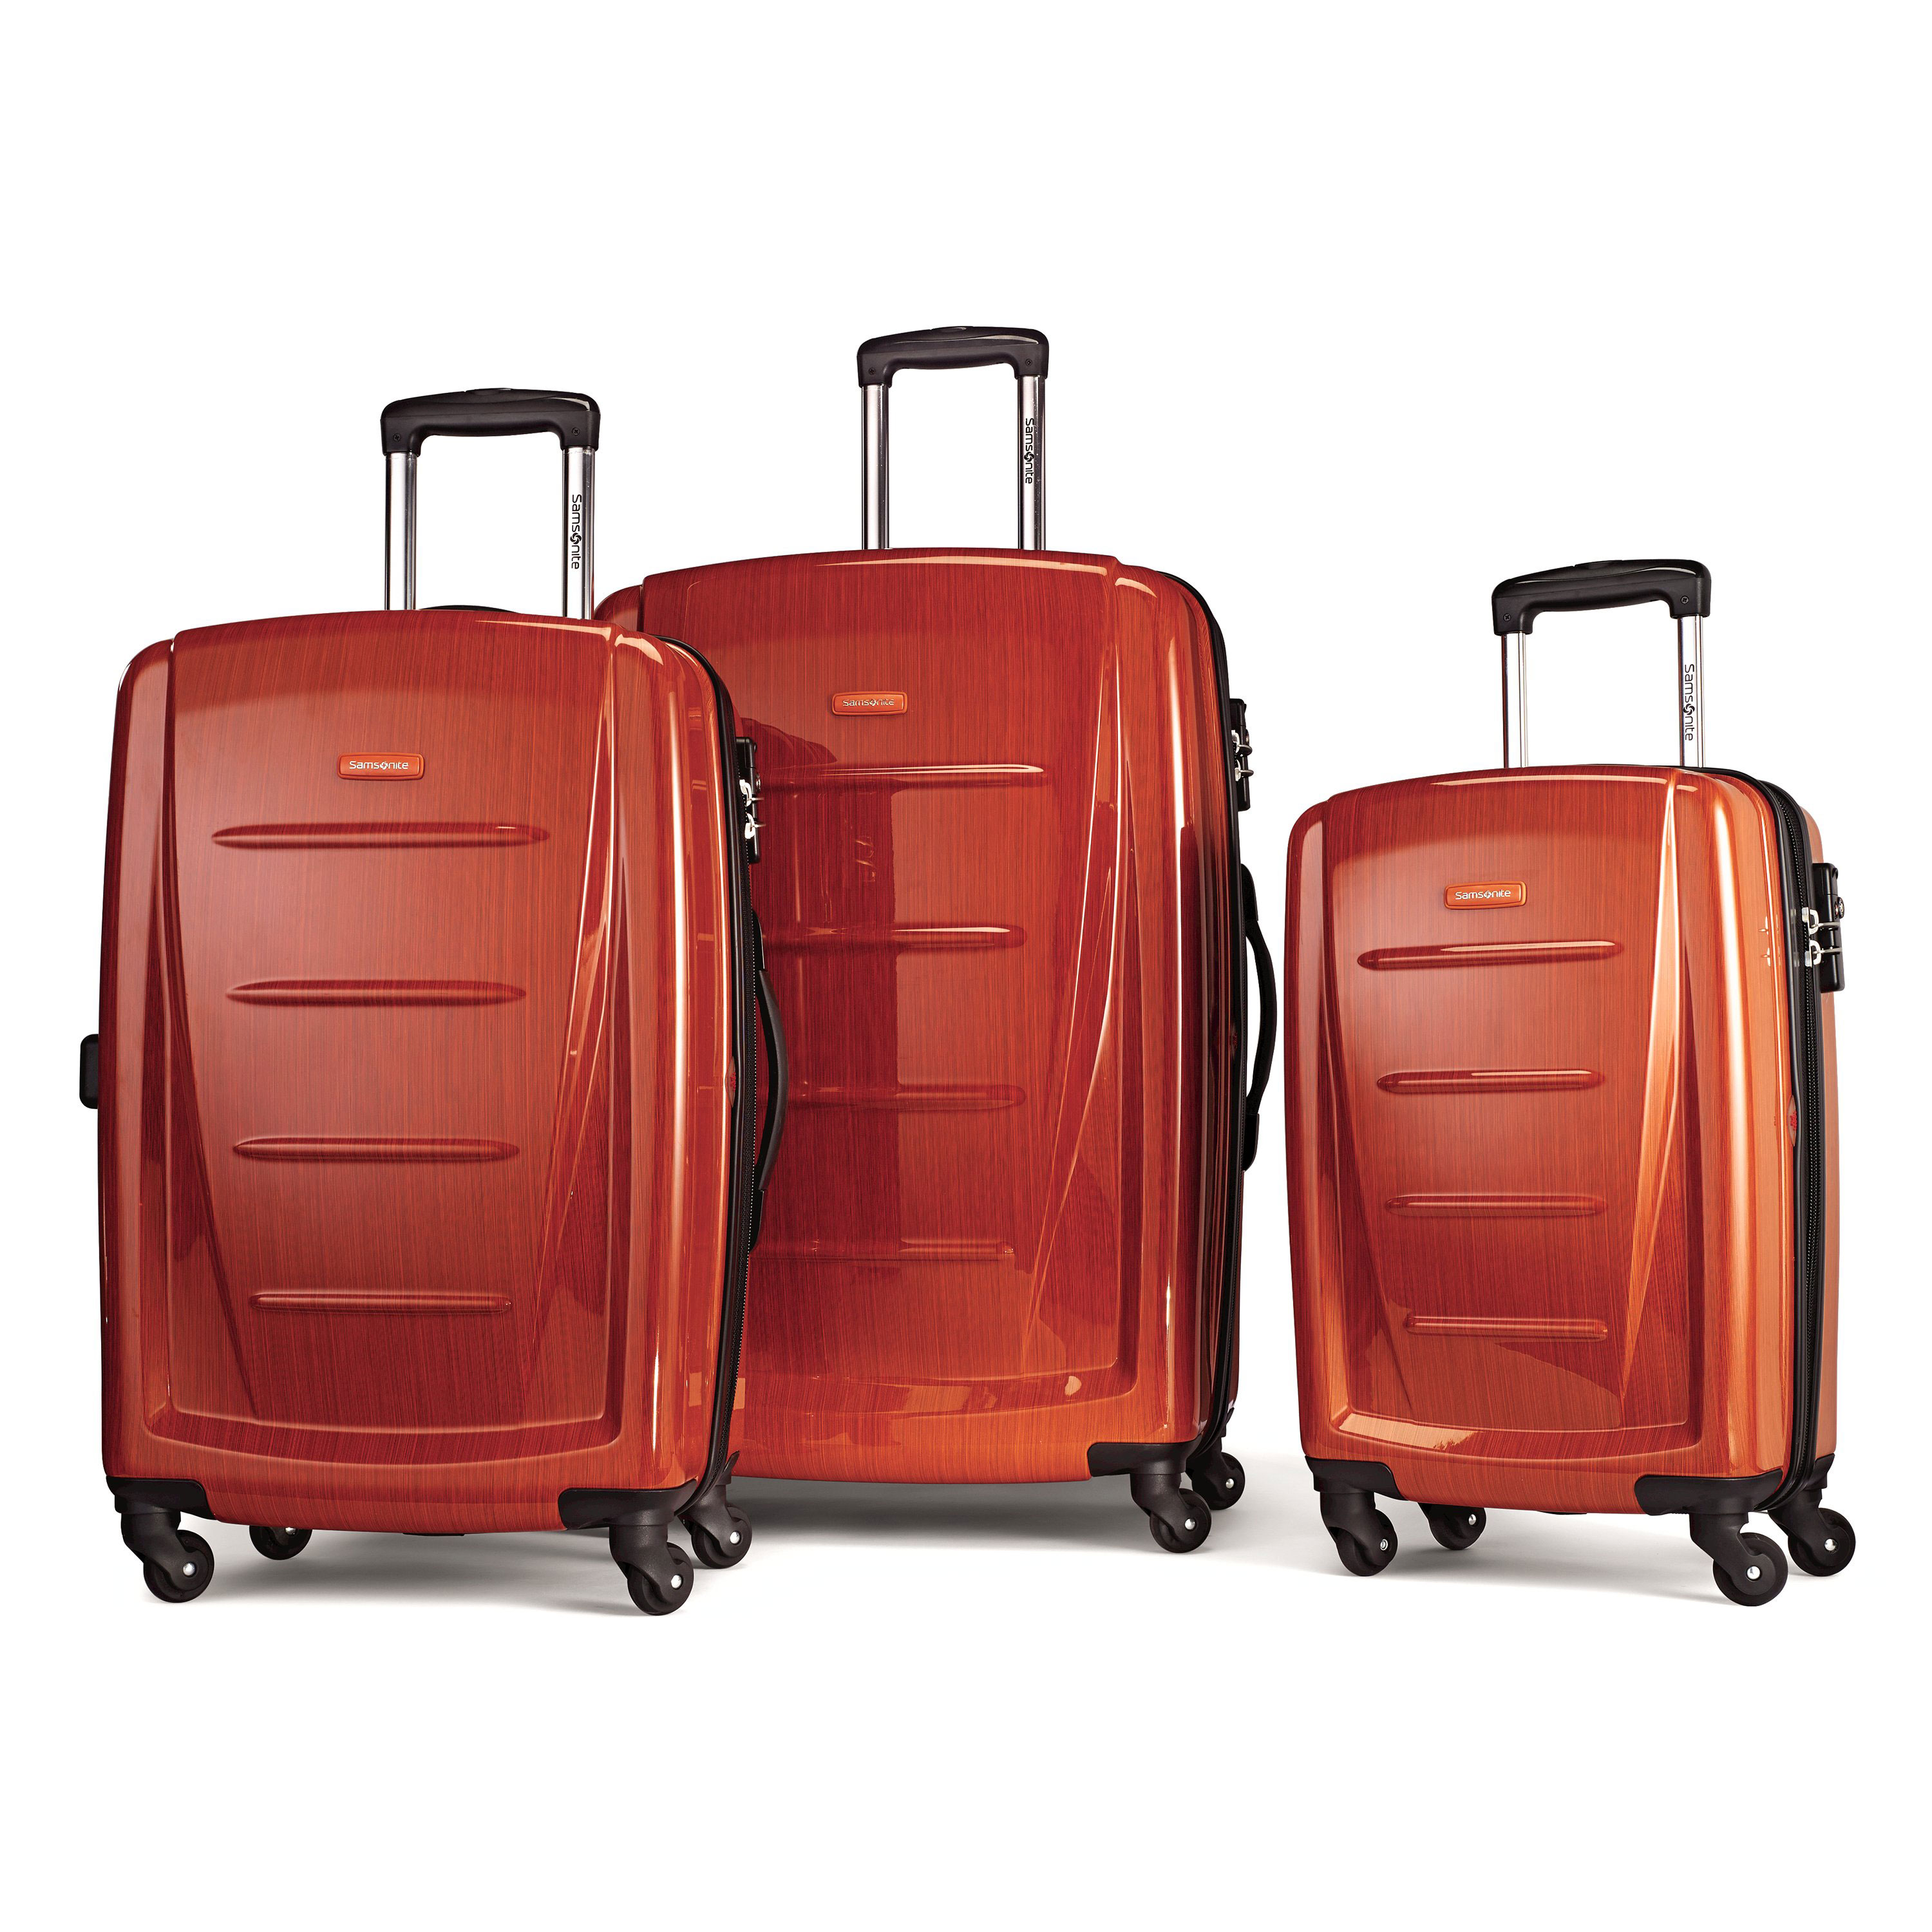 Samsonite luggage has been around since the early 's and is easily one of the Free Shipping· % Low Price Guarantee· Free Returns· 40+ Years of Experience/10 (8, reviews)1,+ followers on Twitter.